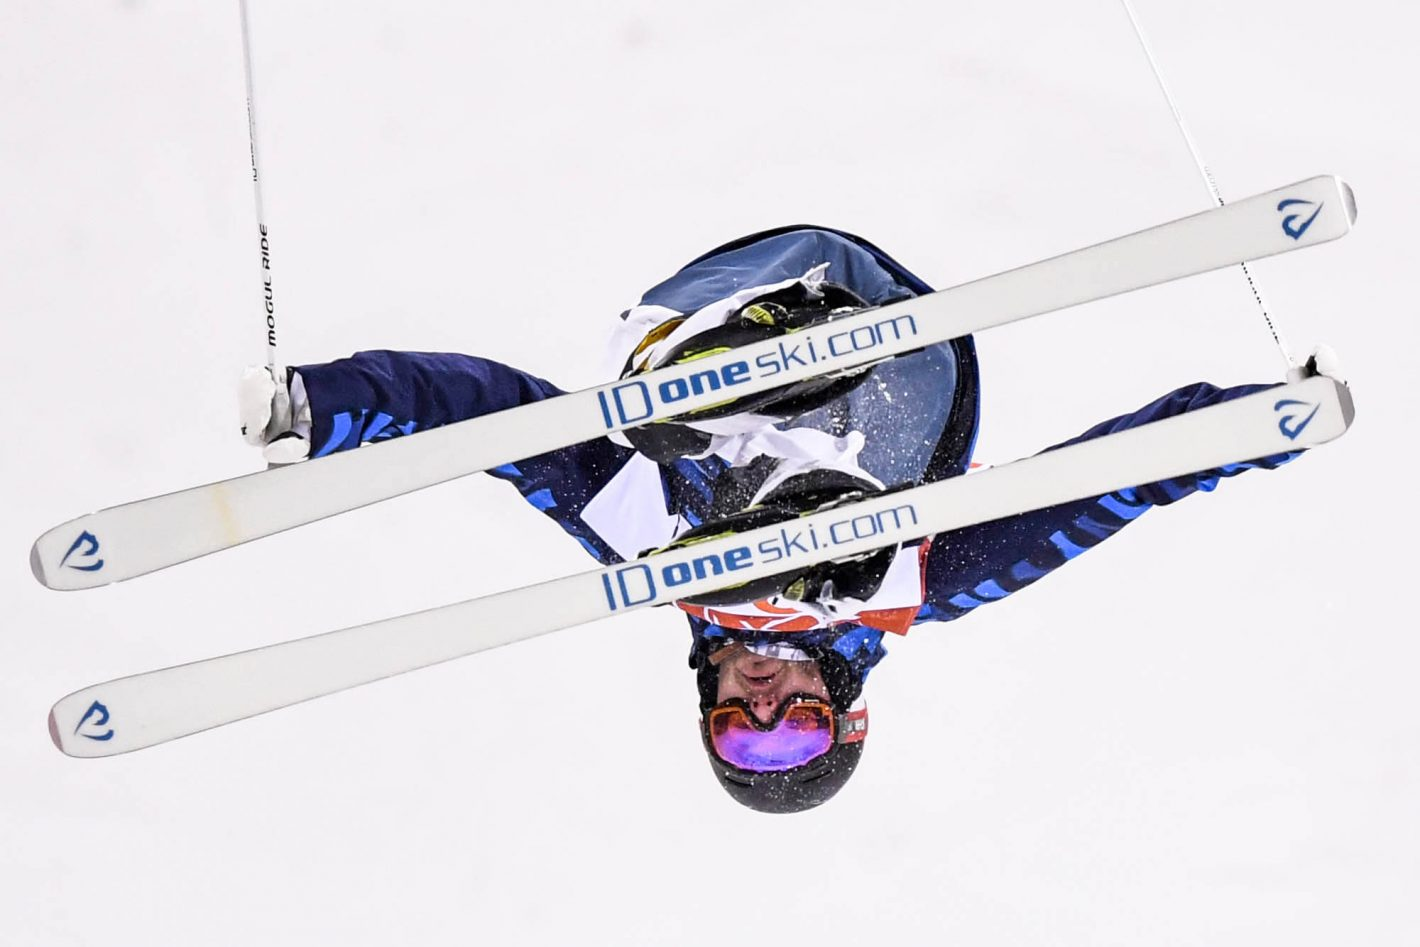 Jussi Penttala (FIN) competes in the freestyle skiing men's moguls qualification 2 at Phoenix Snow Park during the PyeongChang 2018 Olympic Winter Games. Nikon D5 | AF-S NIKKOR 600mm f/4E FL ED VR | ISO 4000 | 1/2500 s | f/4.0 Photo by Kyle Terada/USA TODAY Sports